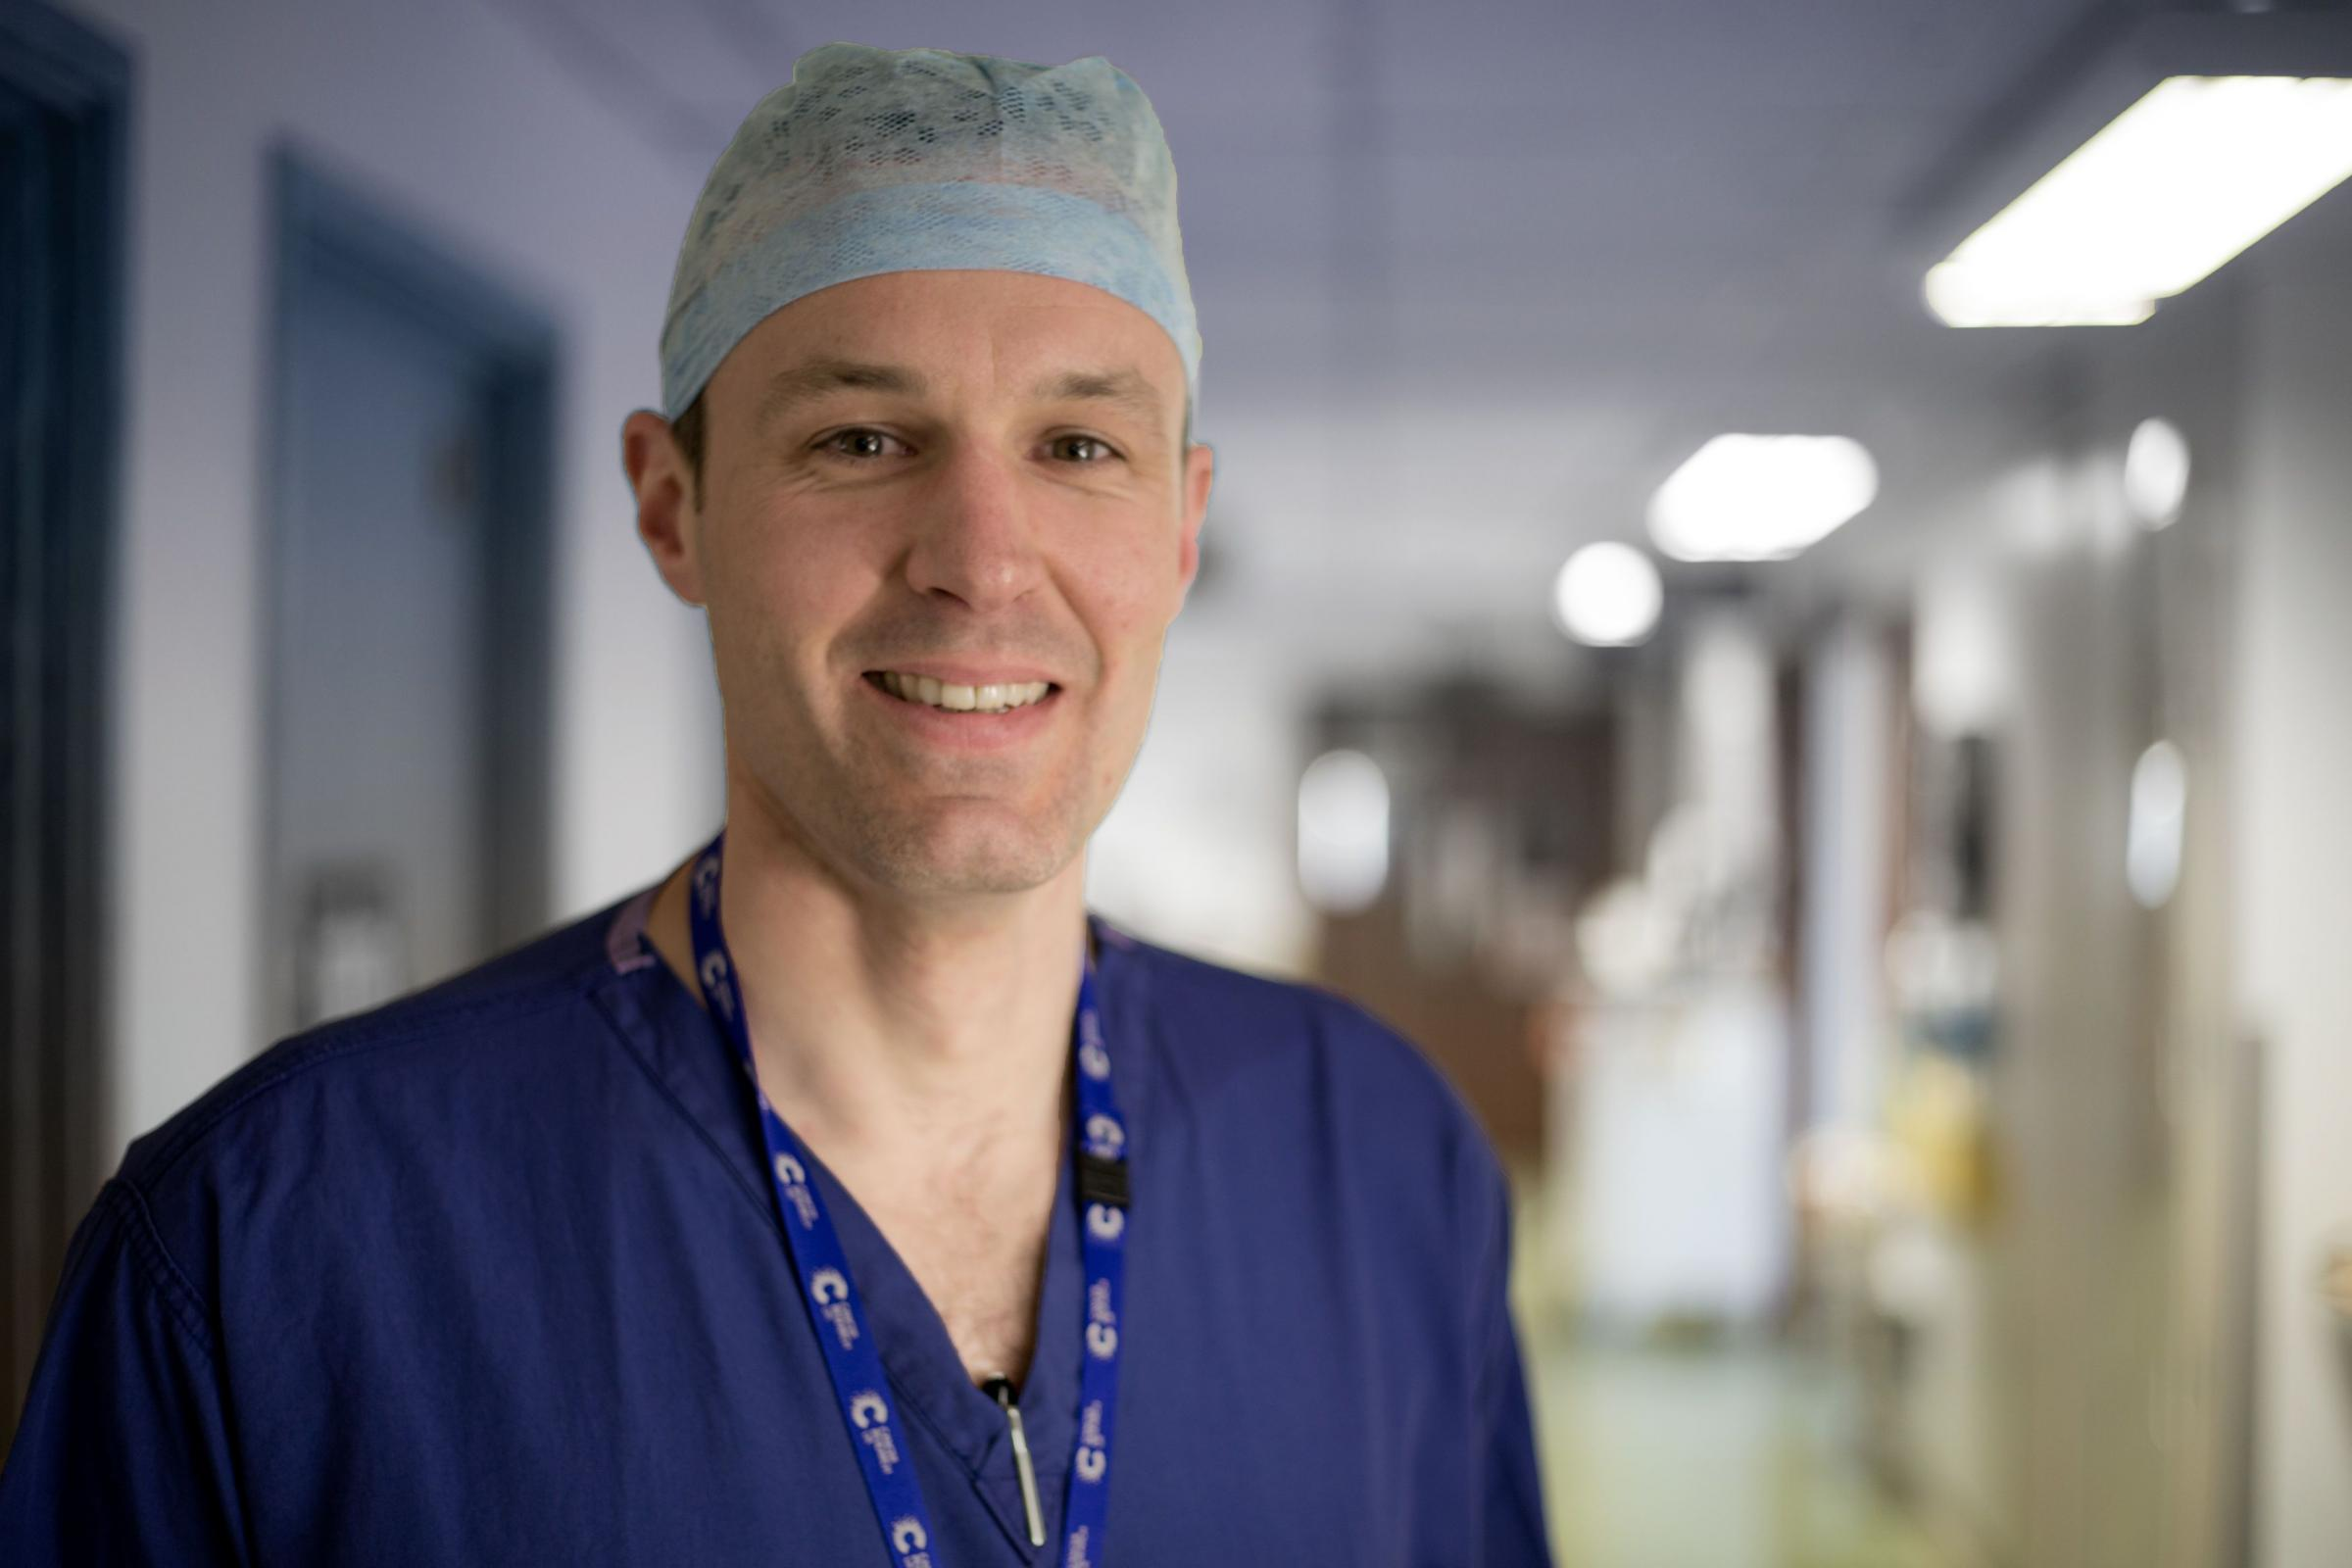 Tim Underwood, MRC clinician scientist at the University of Southampton and Oesophageal Surgeon at Southampton General Hospital